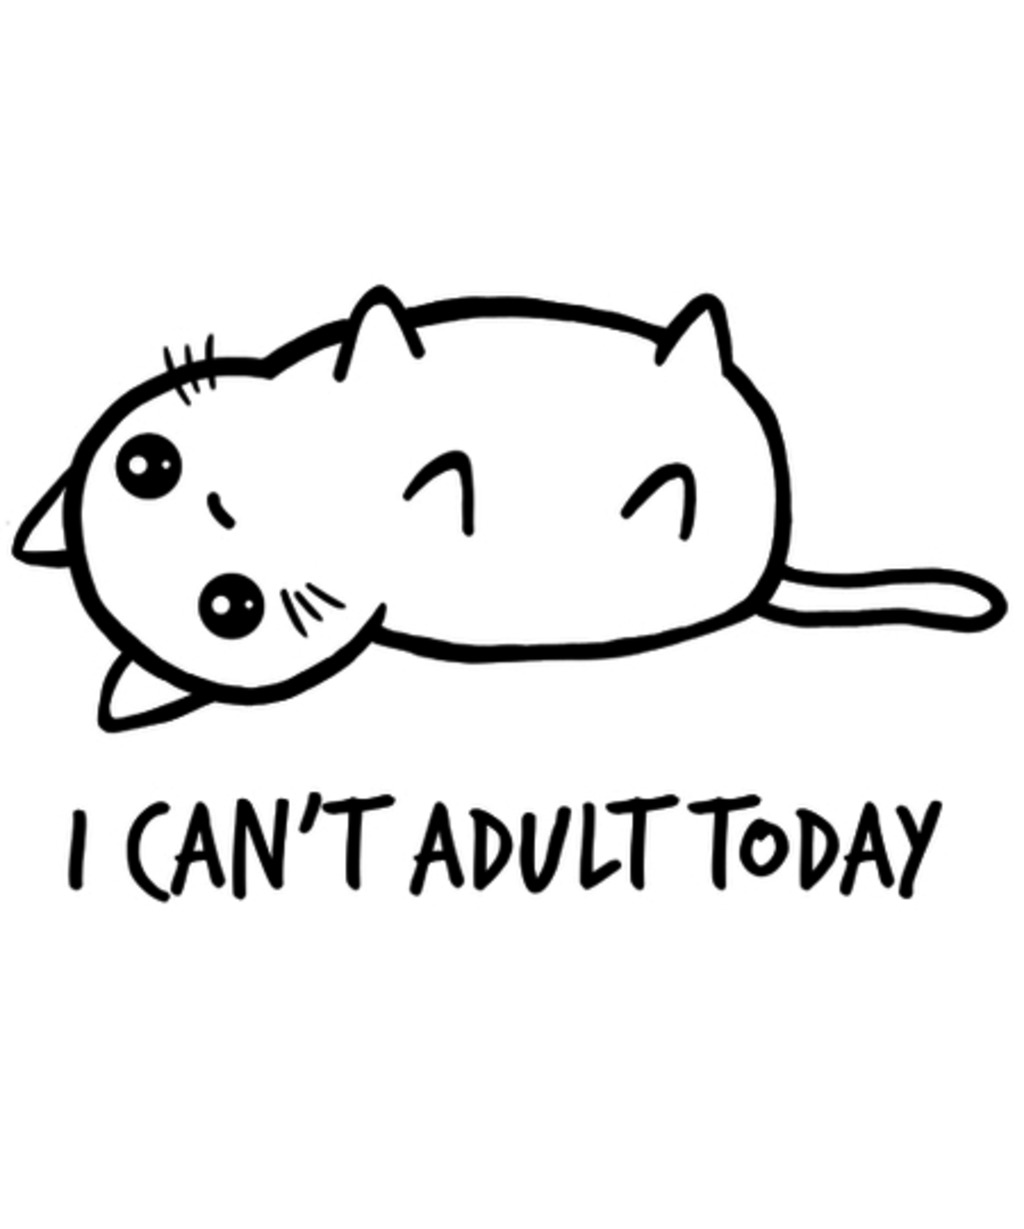 Qwertee: I can't adult today